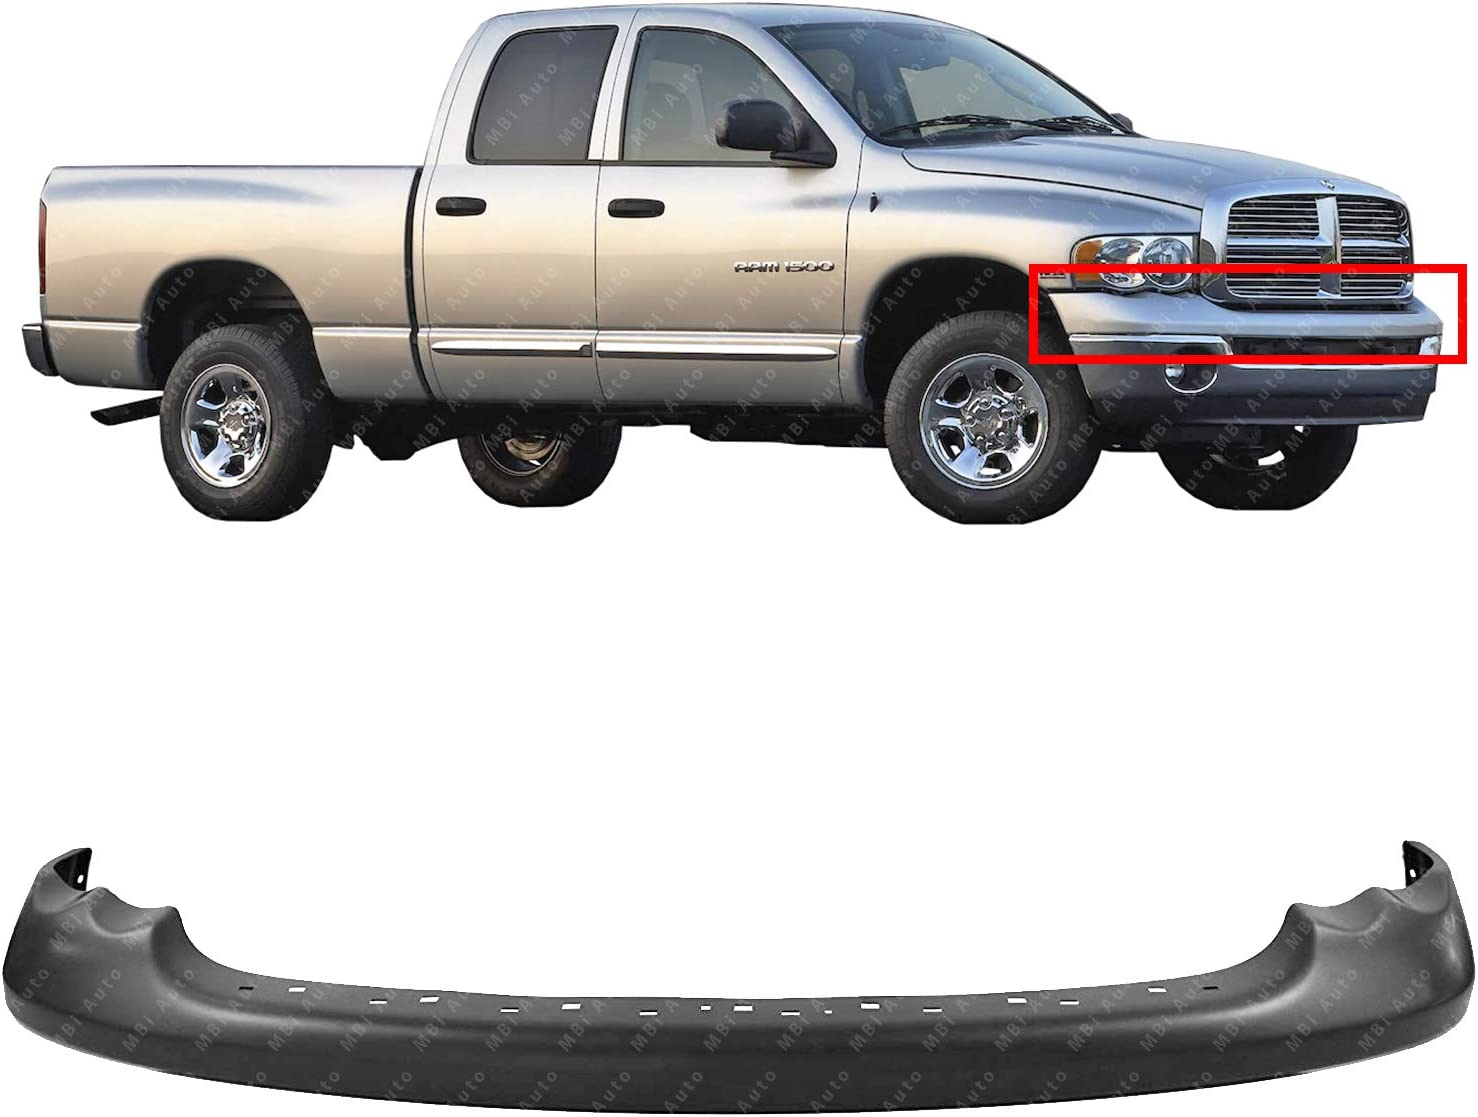 amazon com mbi auto primered front bumper upper cover for 2002 dodge ram 1500 2003 2005 ram 1500 2500 3500 pickup 03 04 05 ch1000338 automotive mbi auto primered front bumper upper cover for 2002 dodge ram 1500 2003 2005 ram 1500 2500 3500 pickup 03 04 05 ch1000338